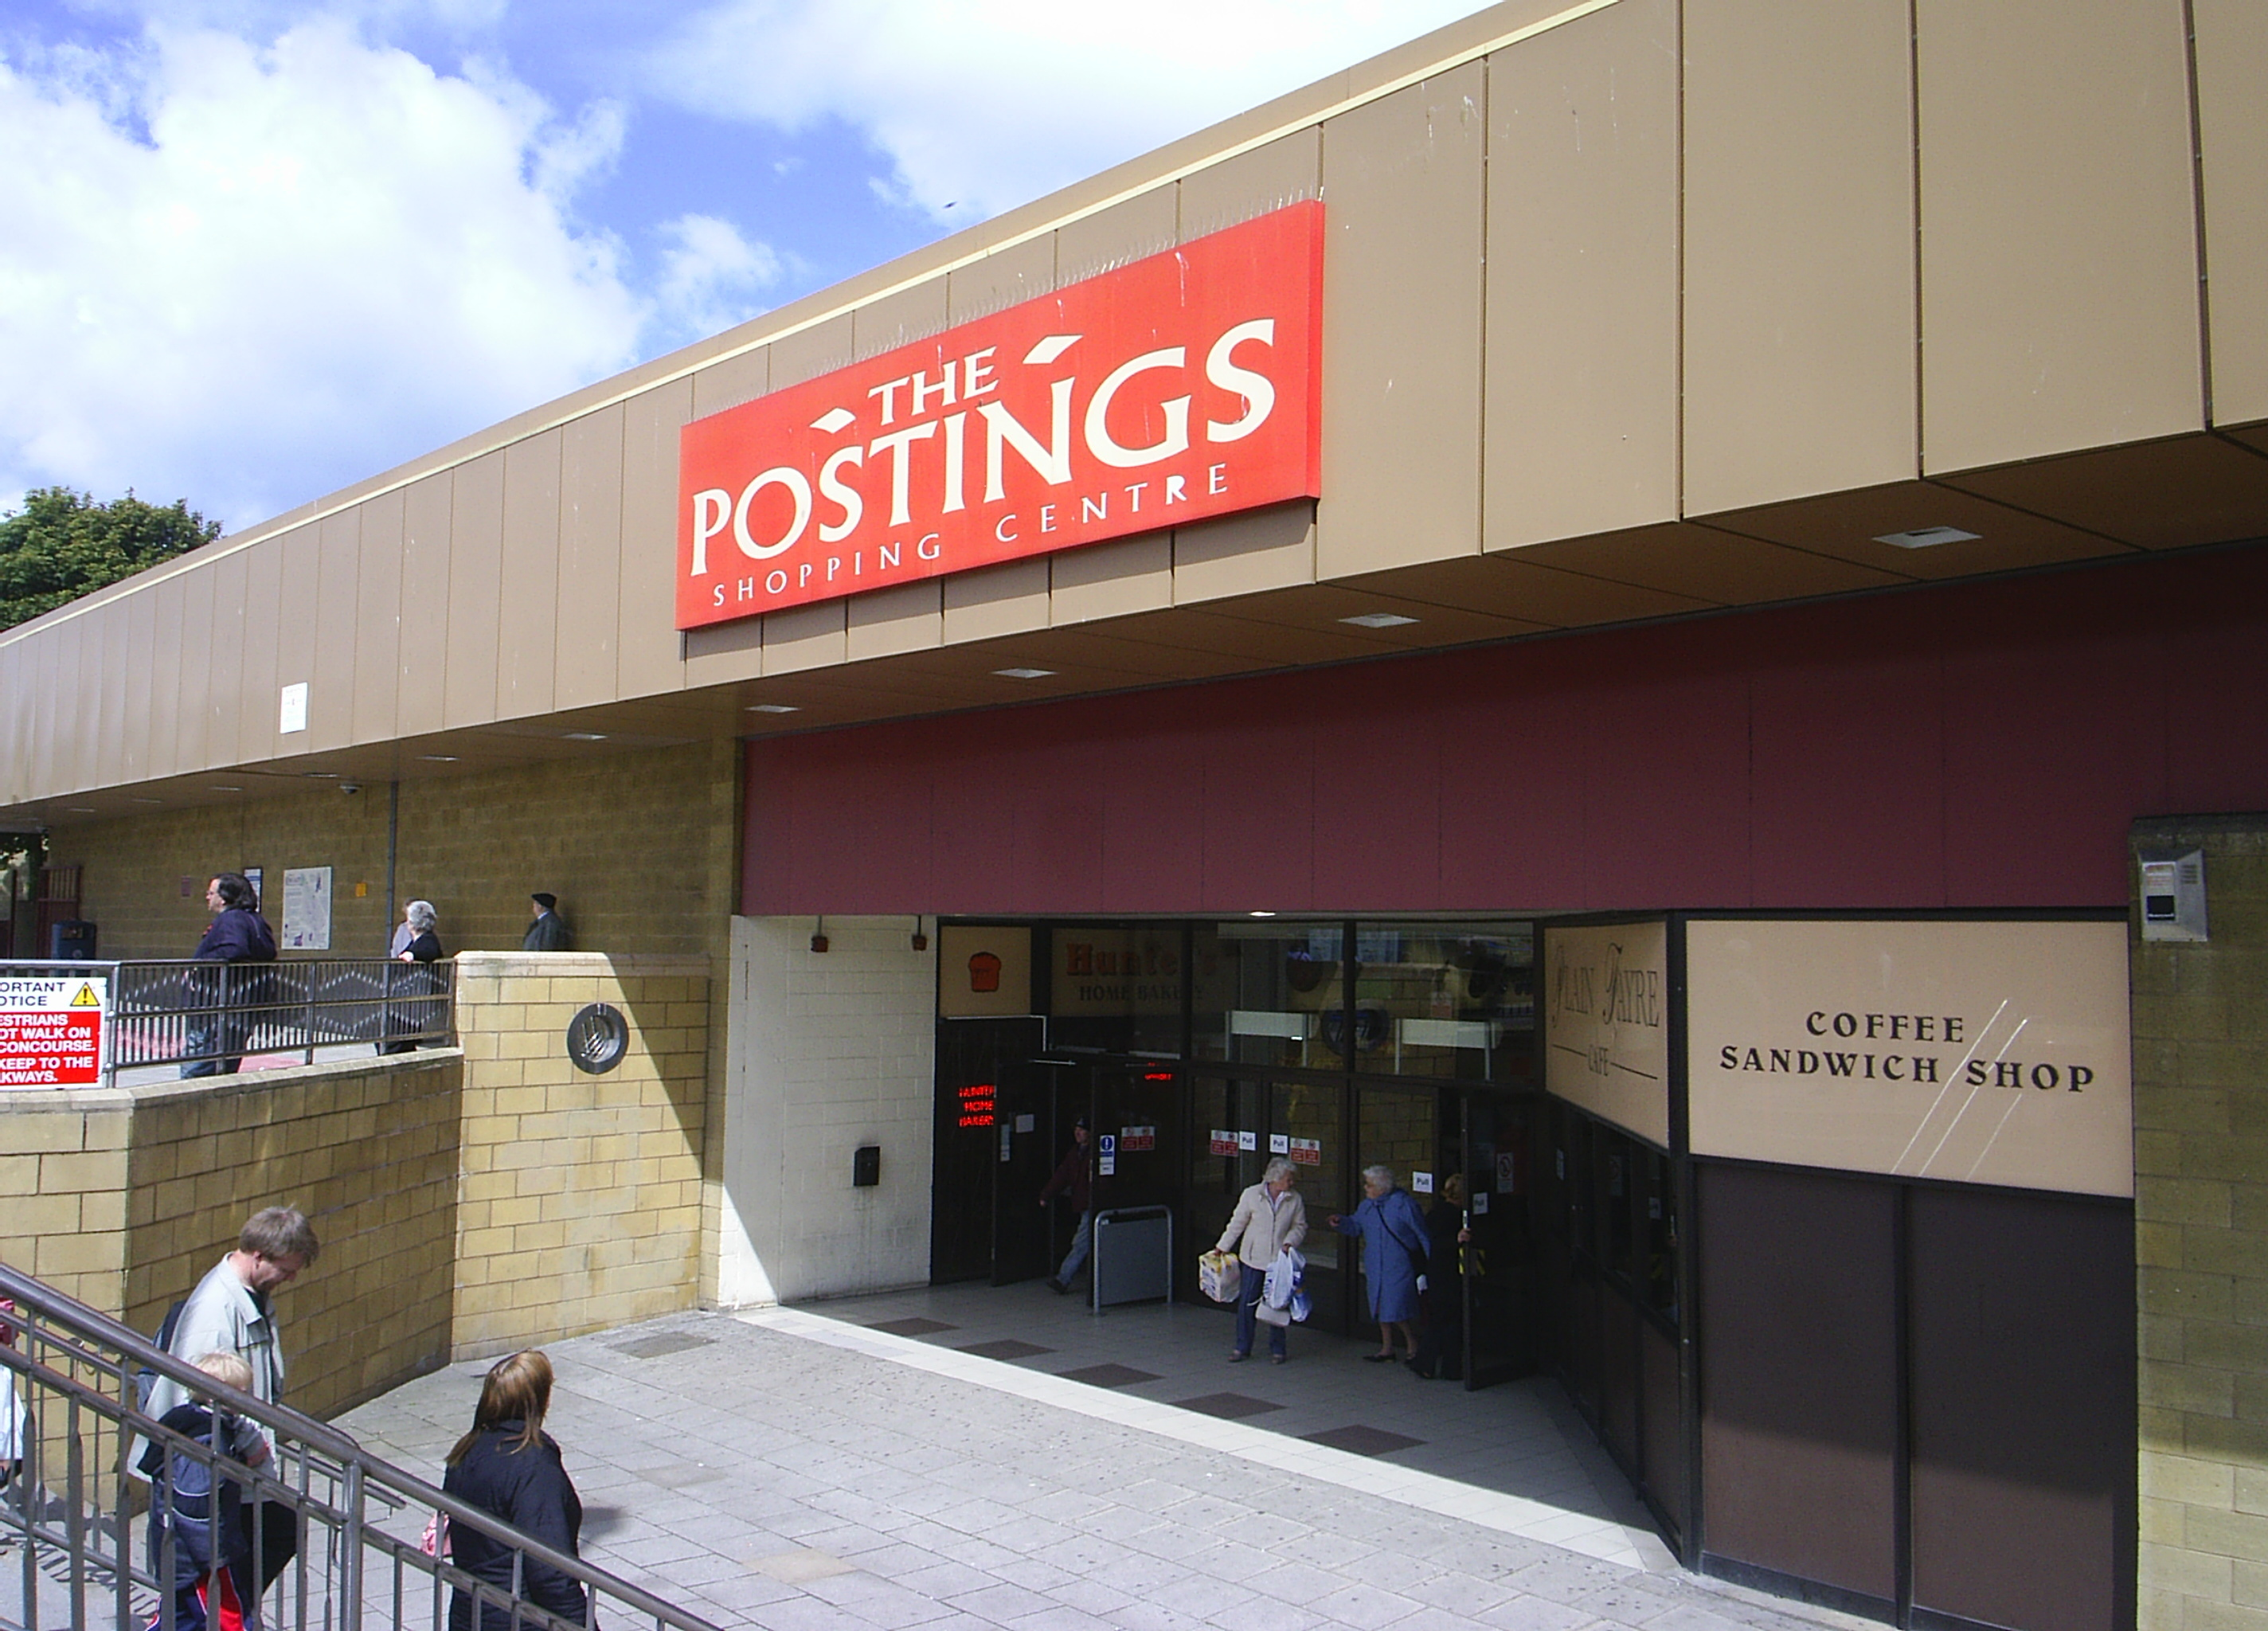 The Postings Shopping Centre.